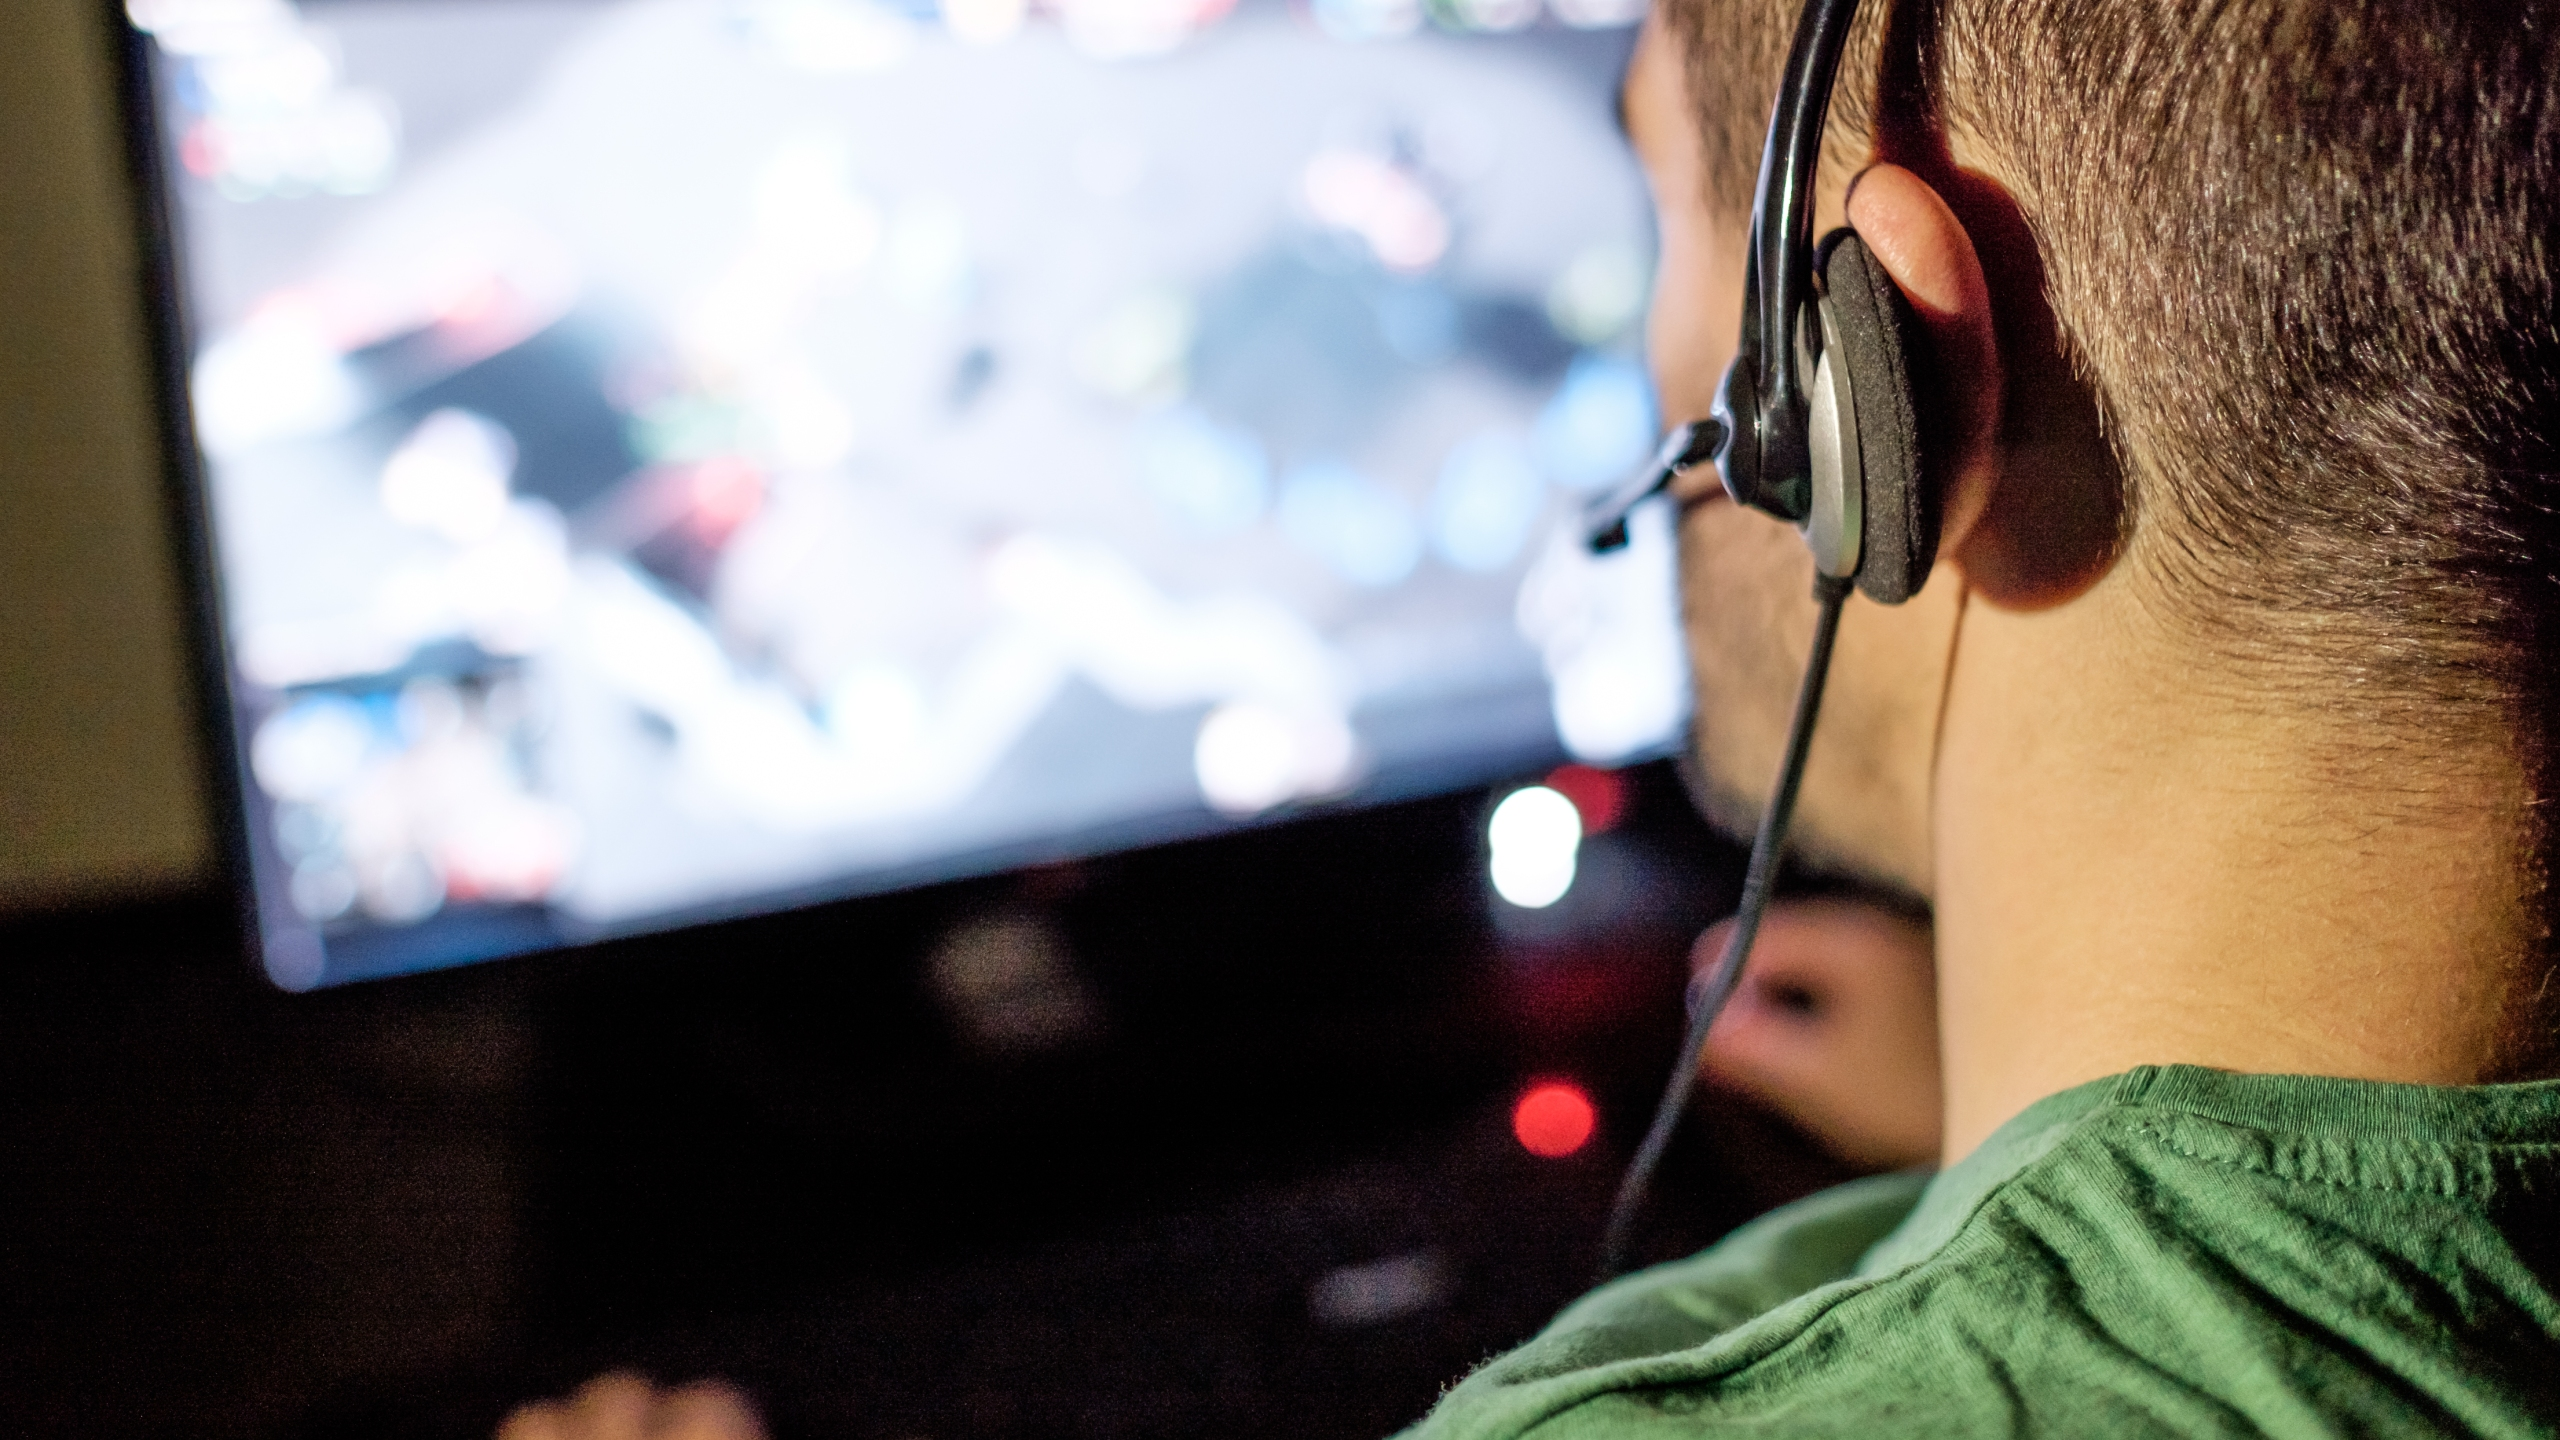 A man with headphones is seen playing video game in this file photo. (Credit: iStock / Getty Images Plus)